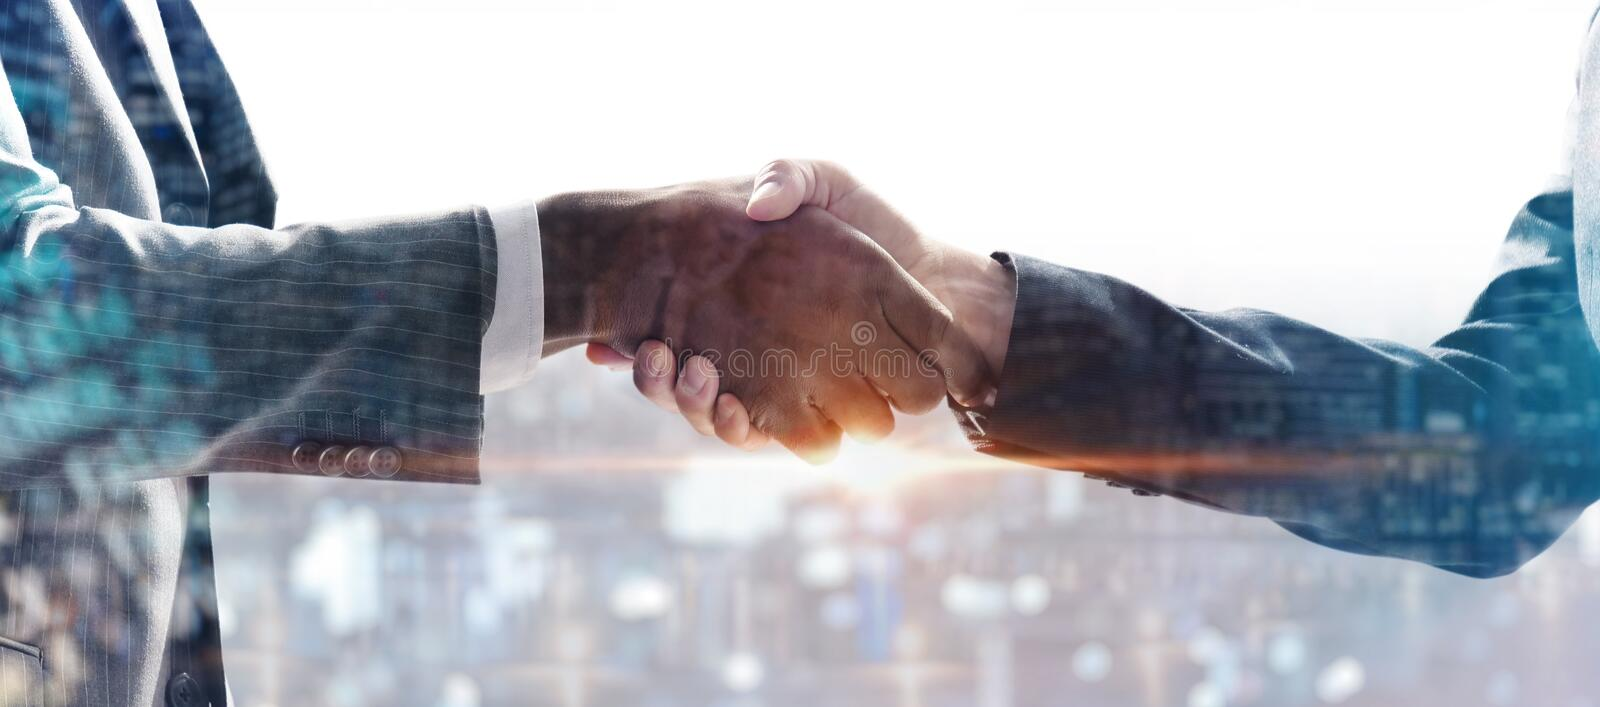 Handshake between builder edilee and engineer behind the city under construction. concept of future and work and passion for busin royalty free stock photos